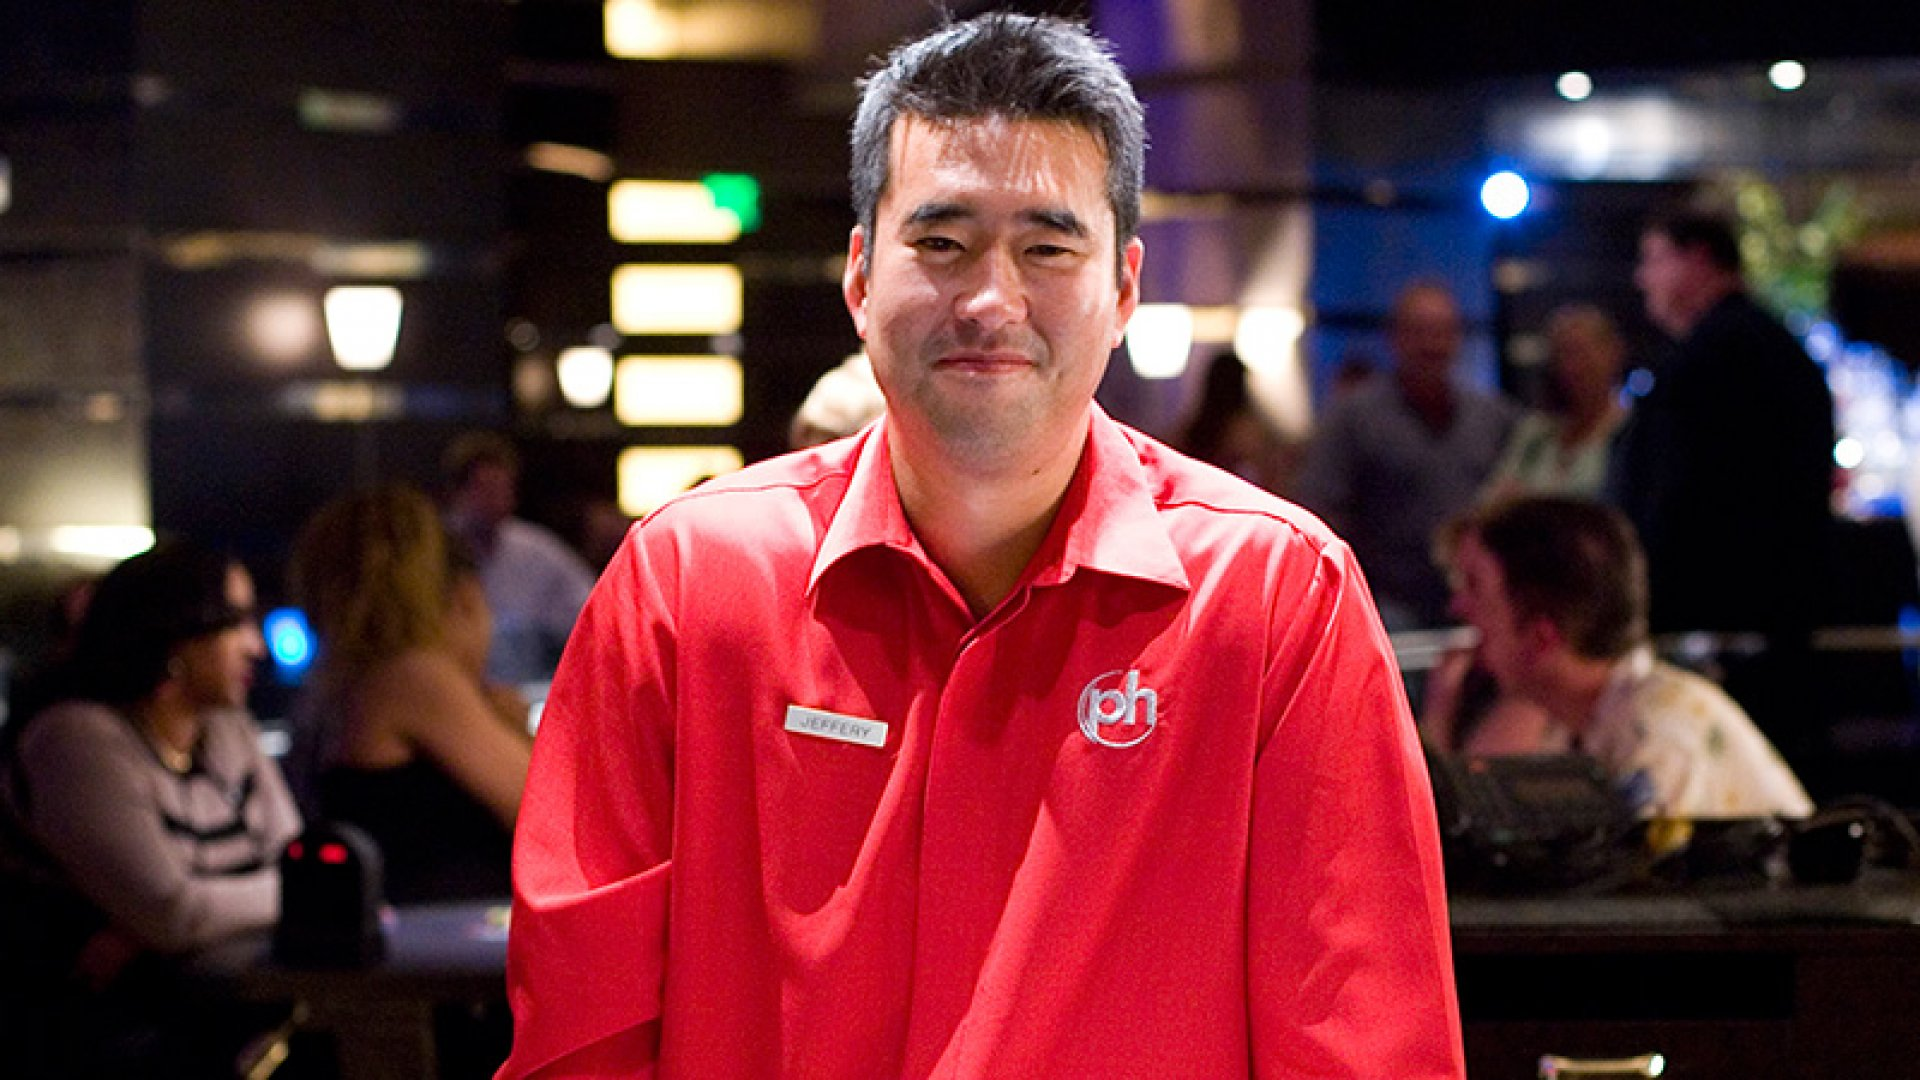 How Blackjack Helped Jeff Ma Sell His Startups to Yahoo, Virgin, and Twitter